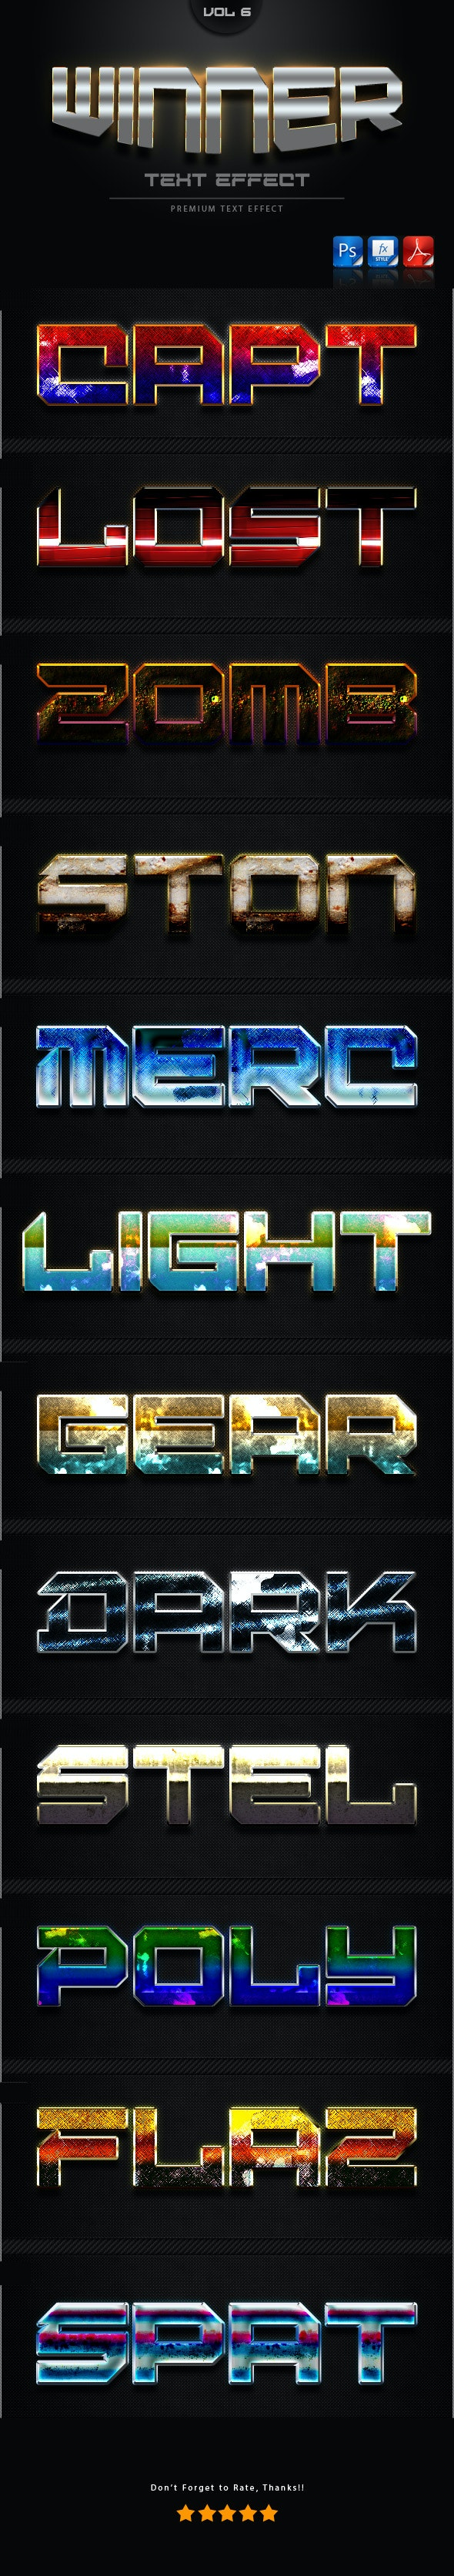 Winner Text Effect Styles Vol 6 - Text Effects Styles